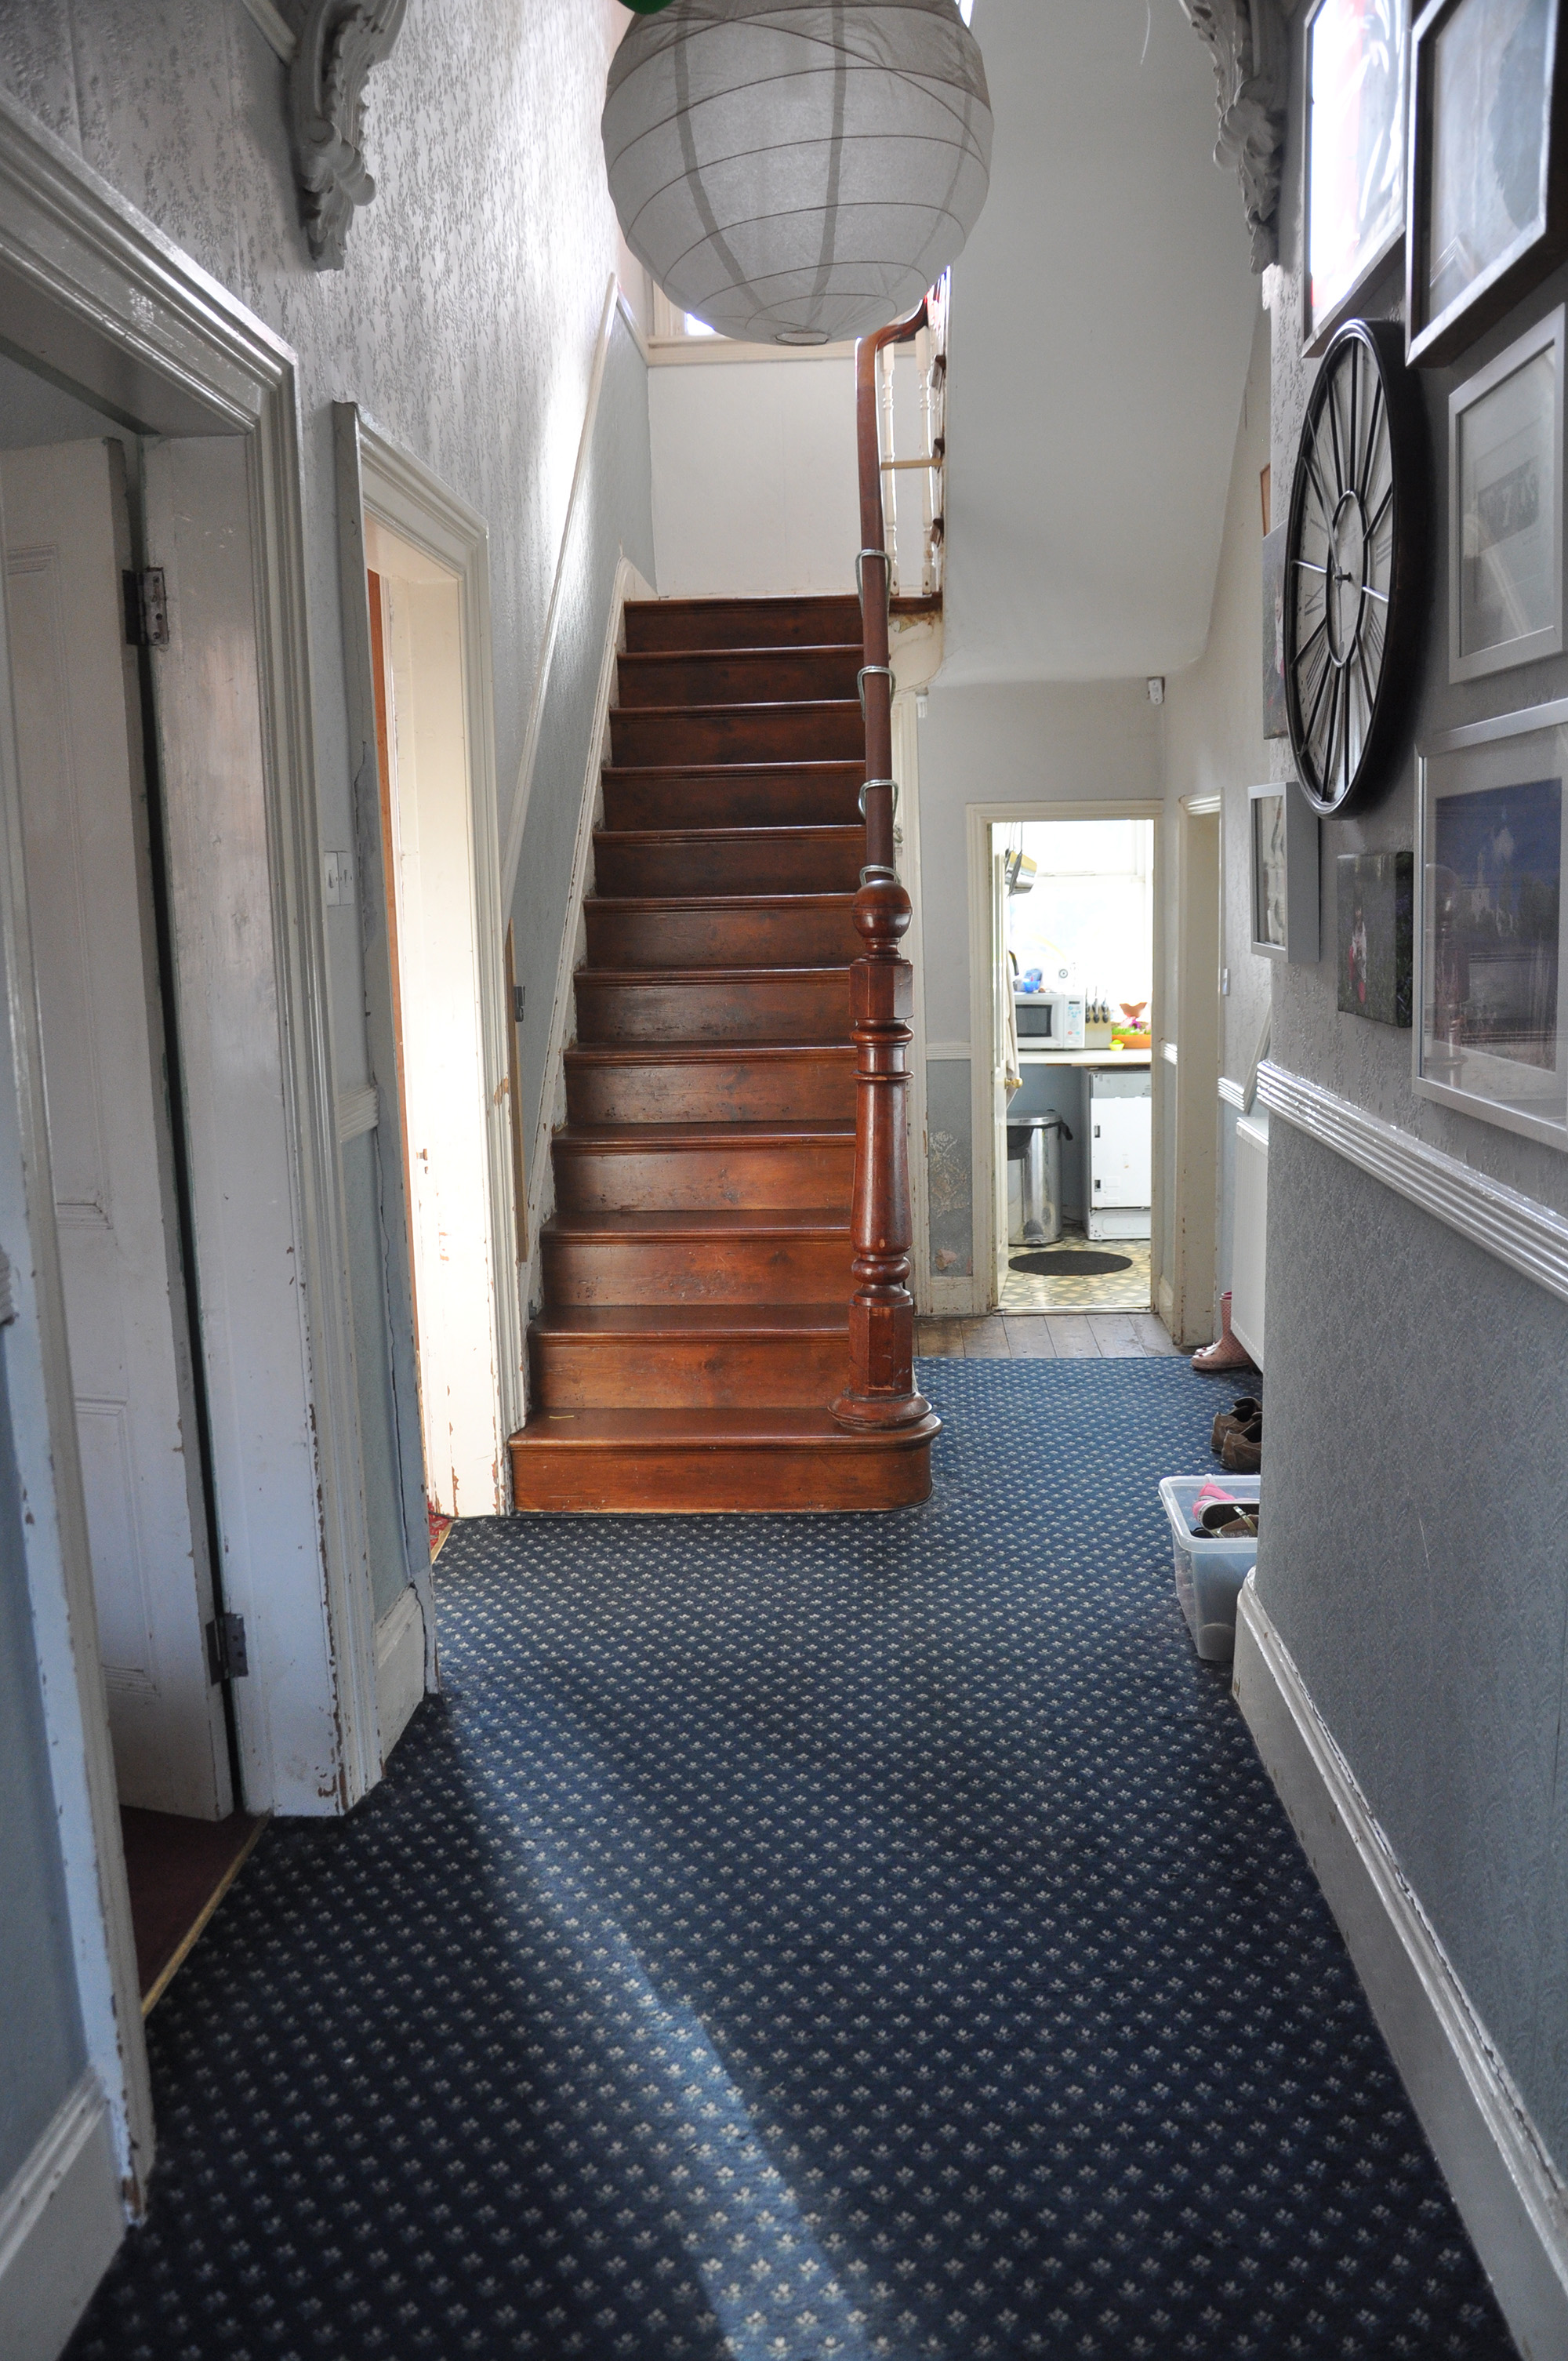 The original view from the front door through to the kitchen.